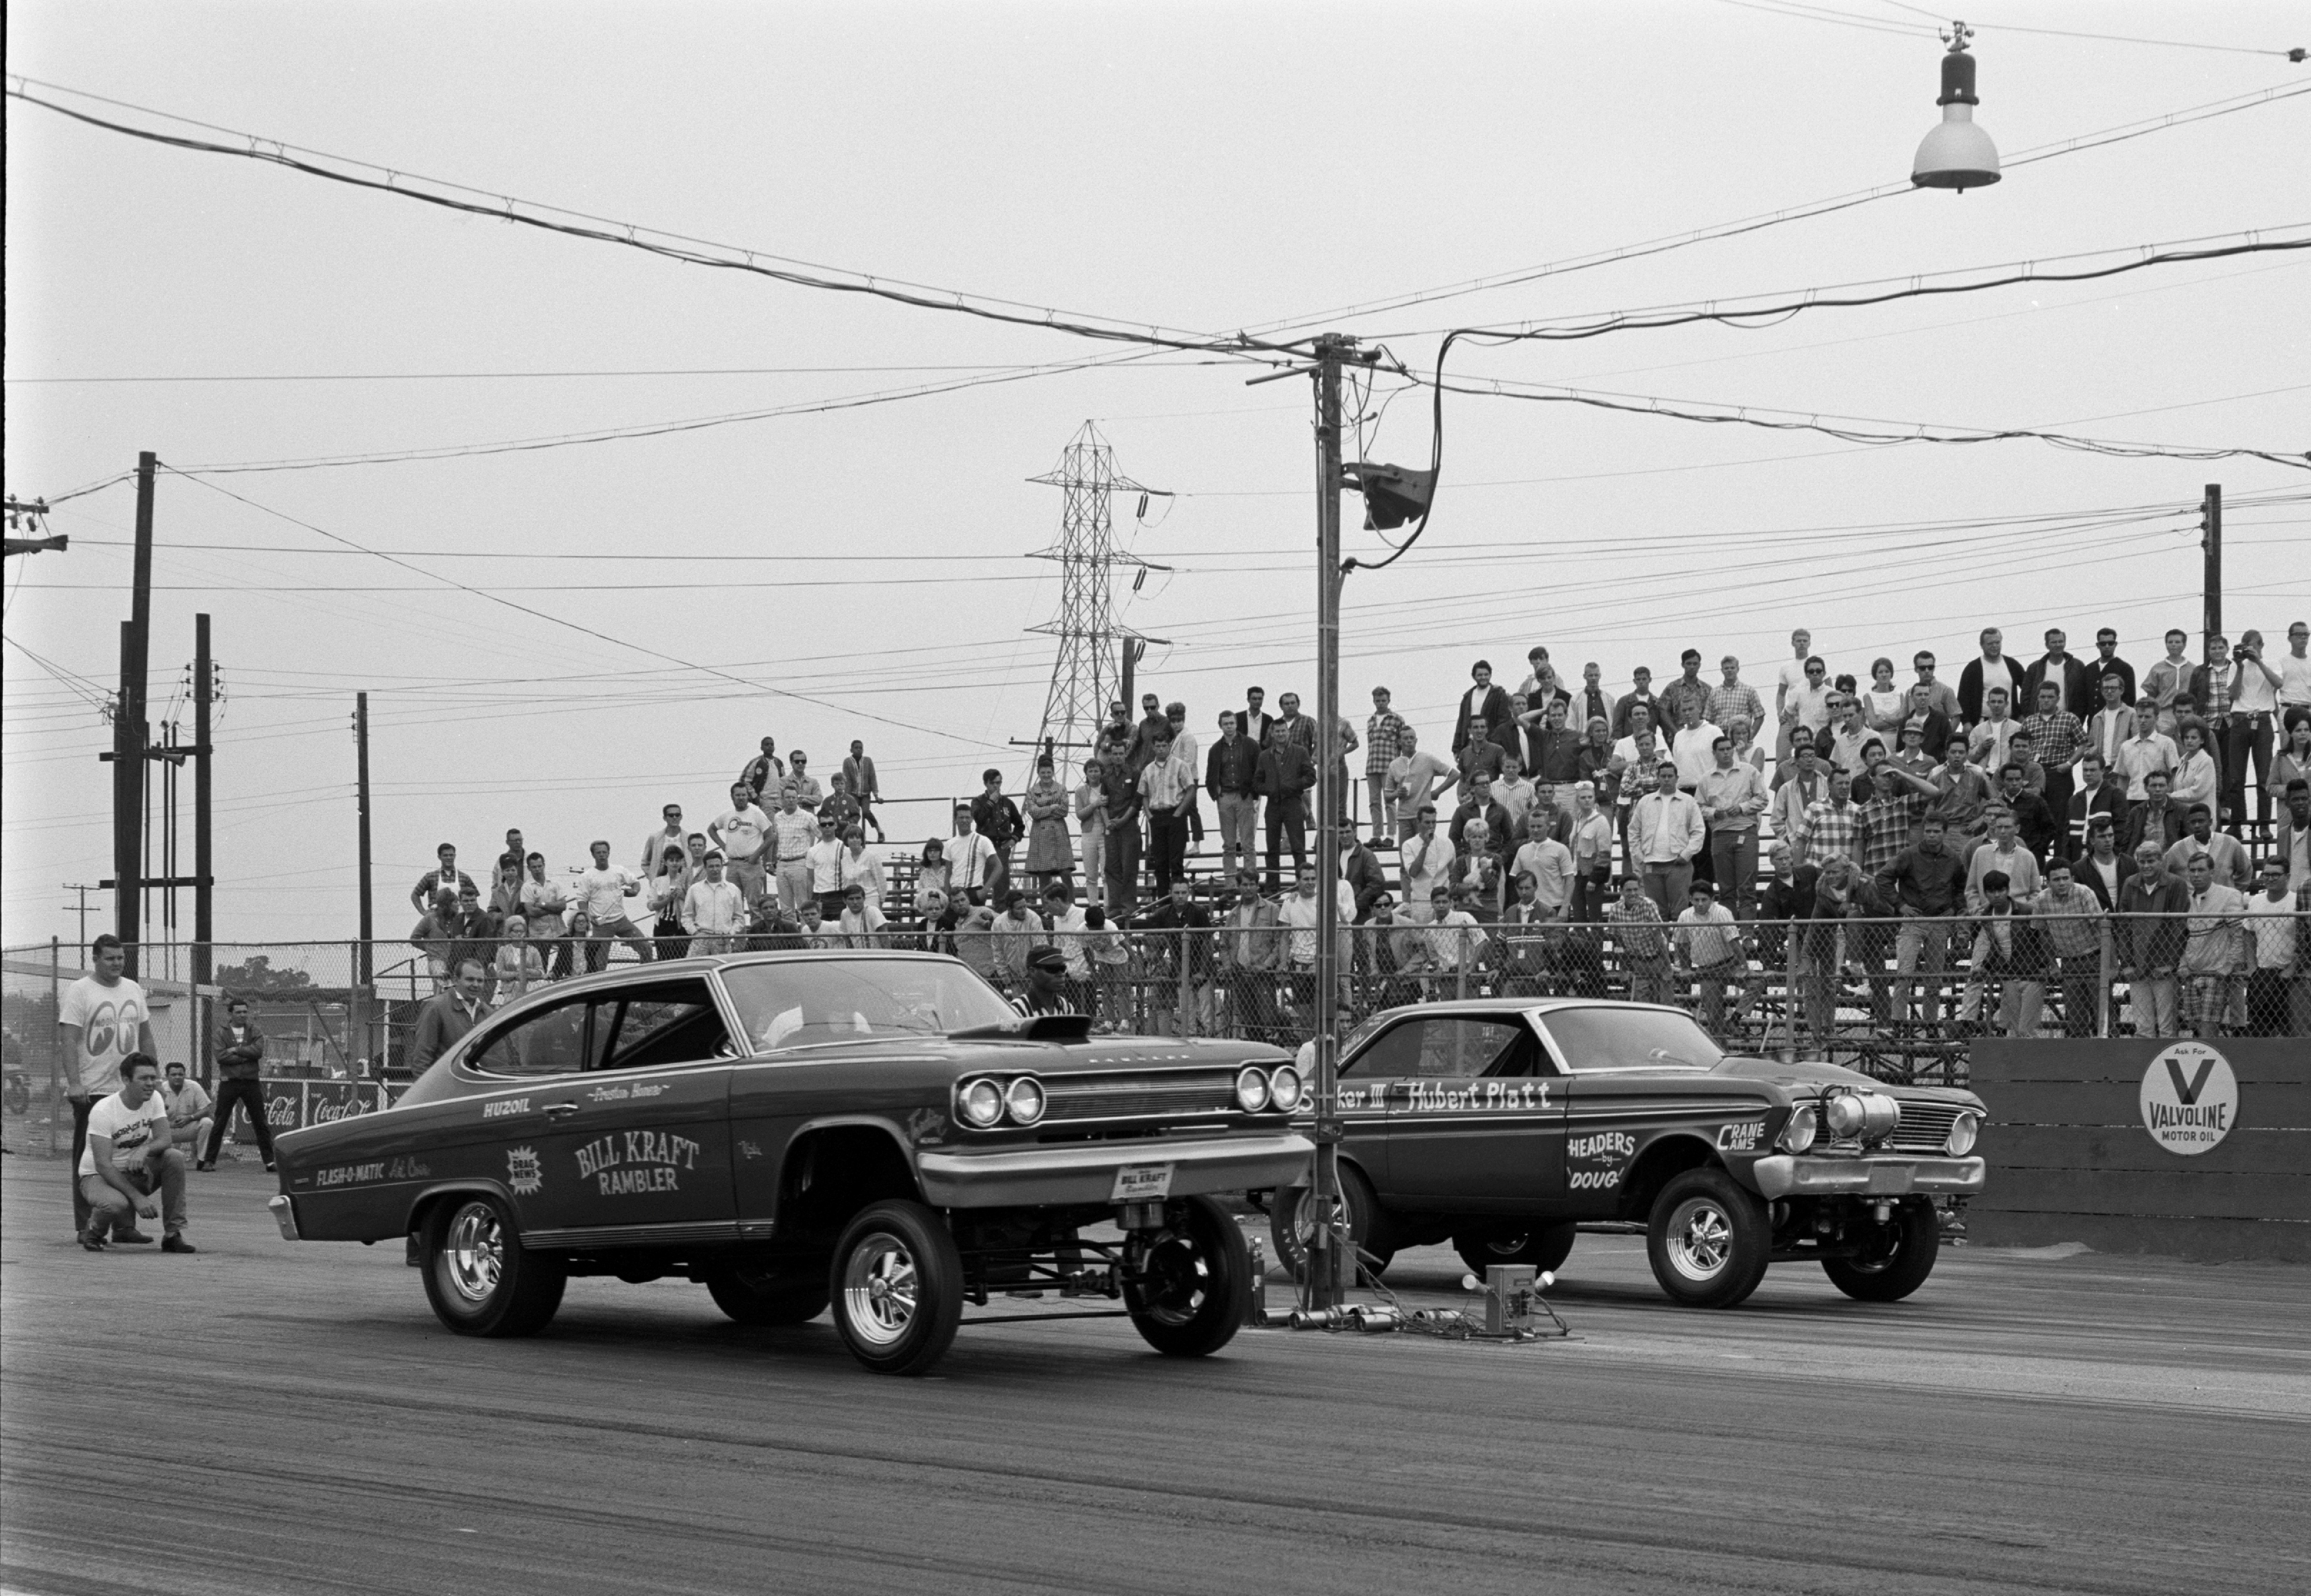 Lions Drag Strip shot from August 1965 getting a hole-shot on the Georgia Shaker Hubert Platt.